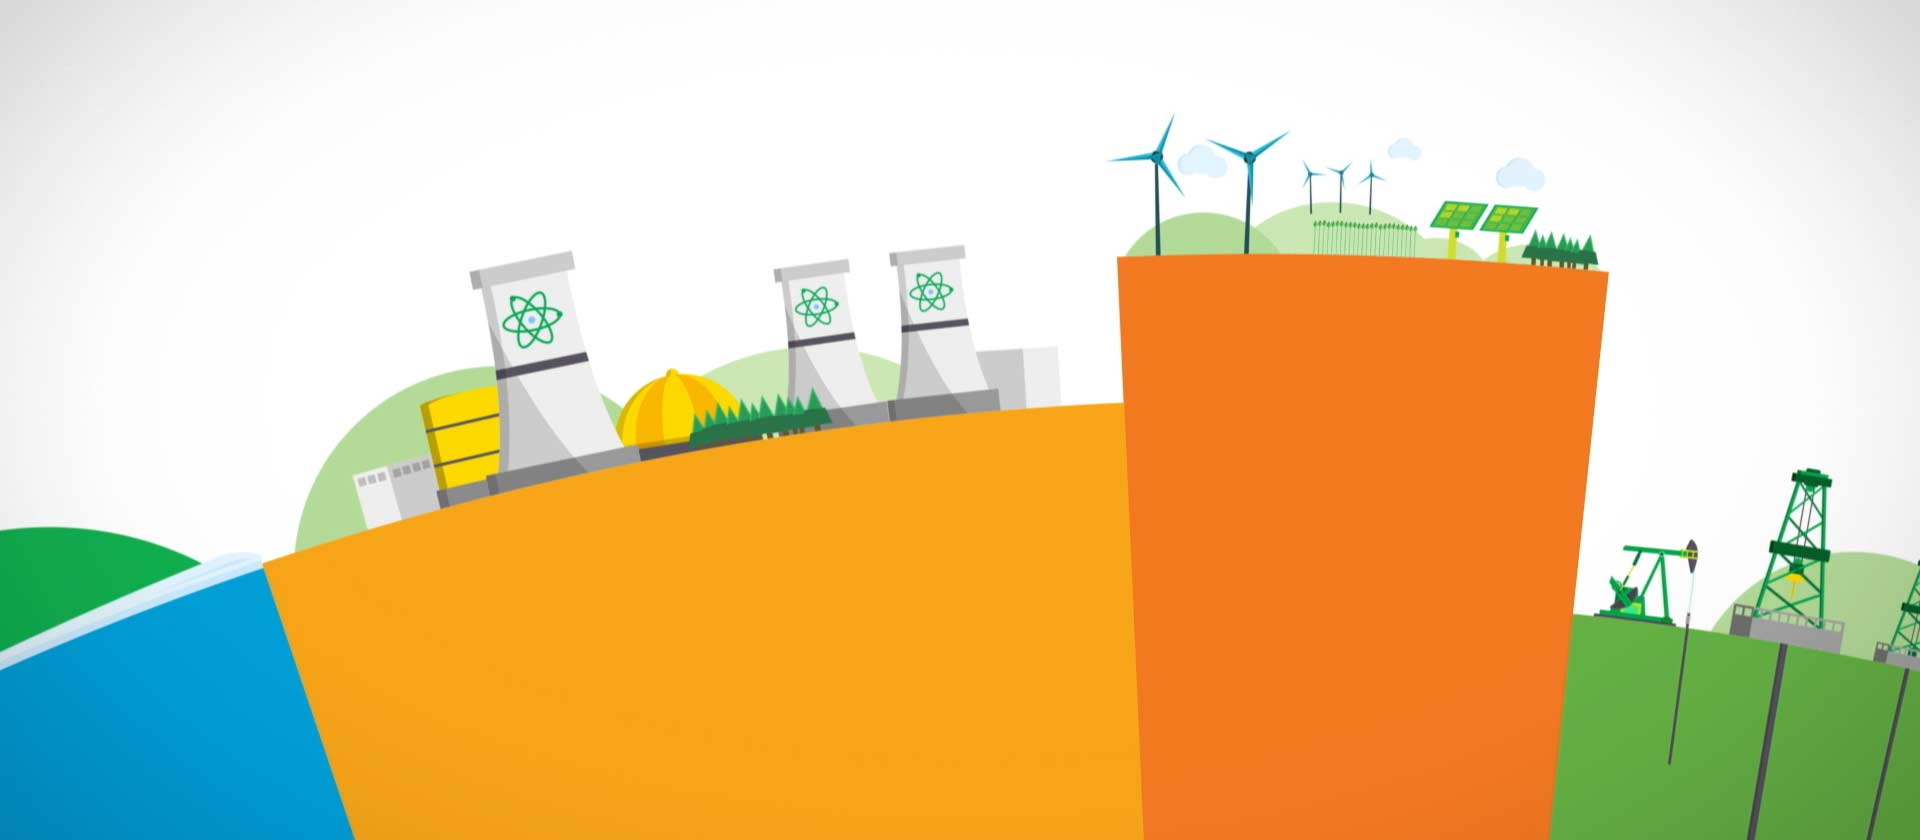 Energy Outlook 2035 - Motion graphics and 2D animation - Infographic film for BP